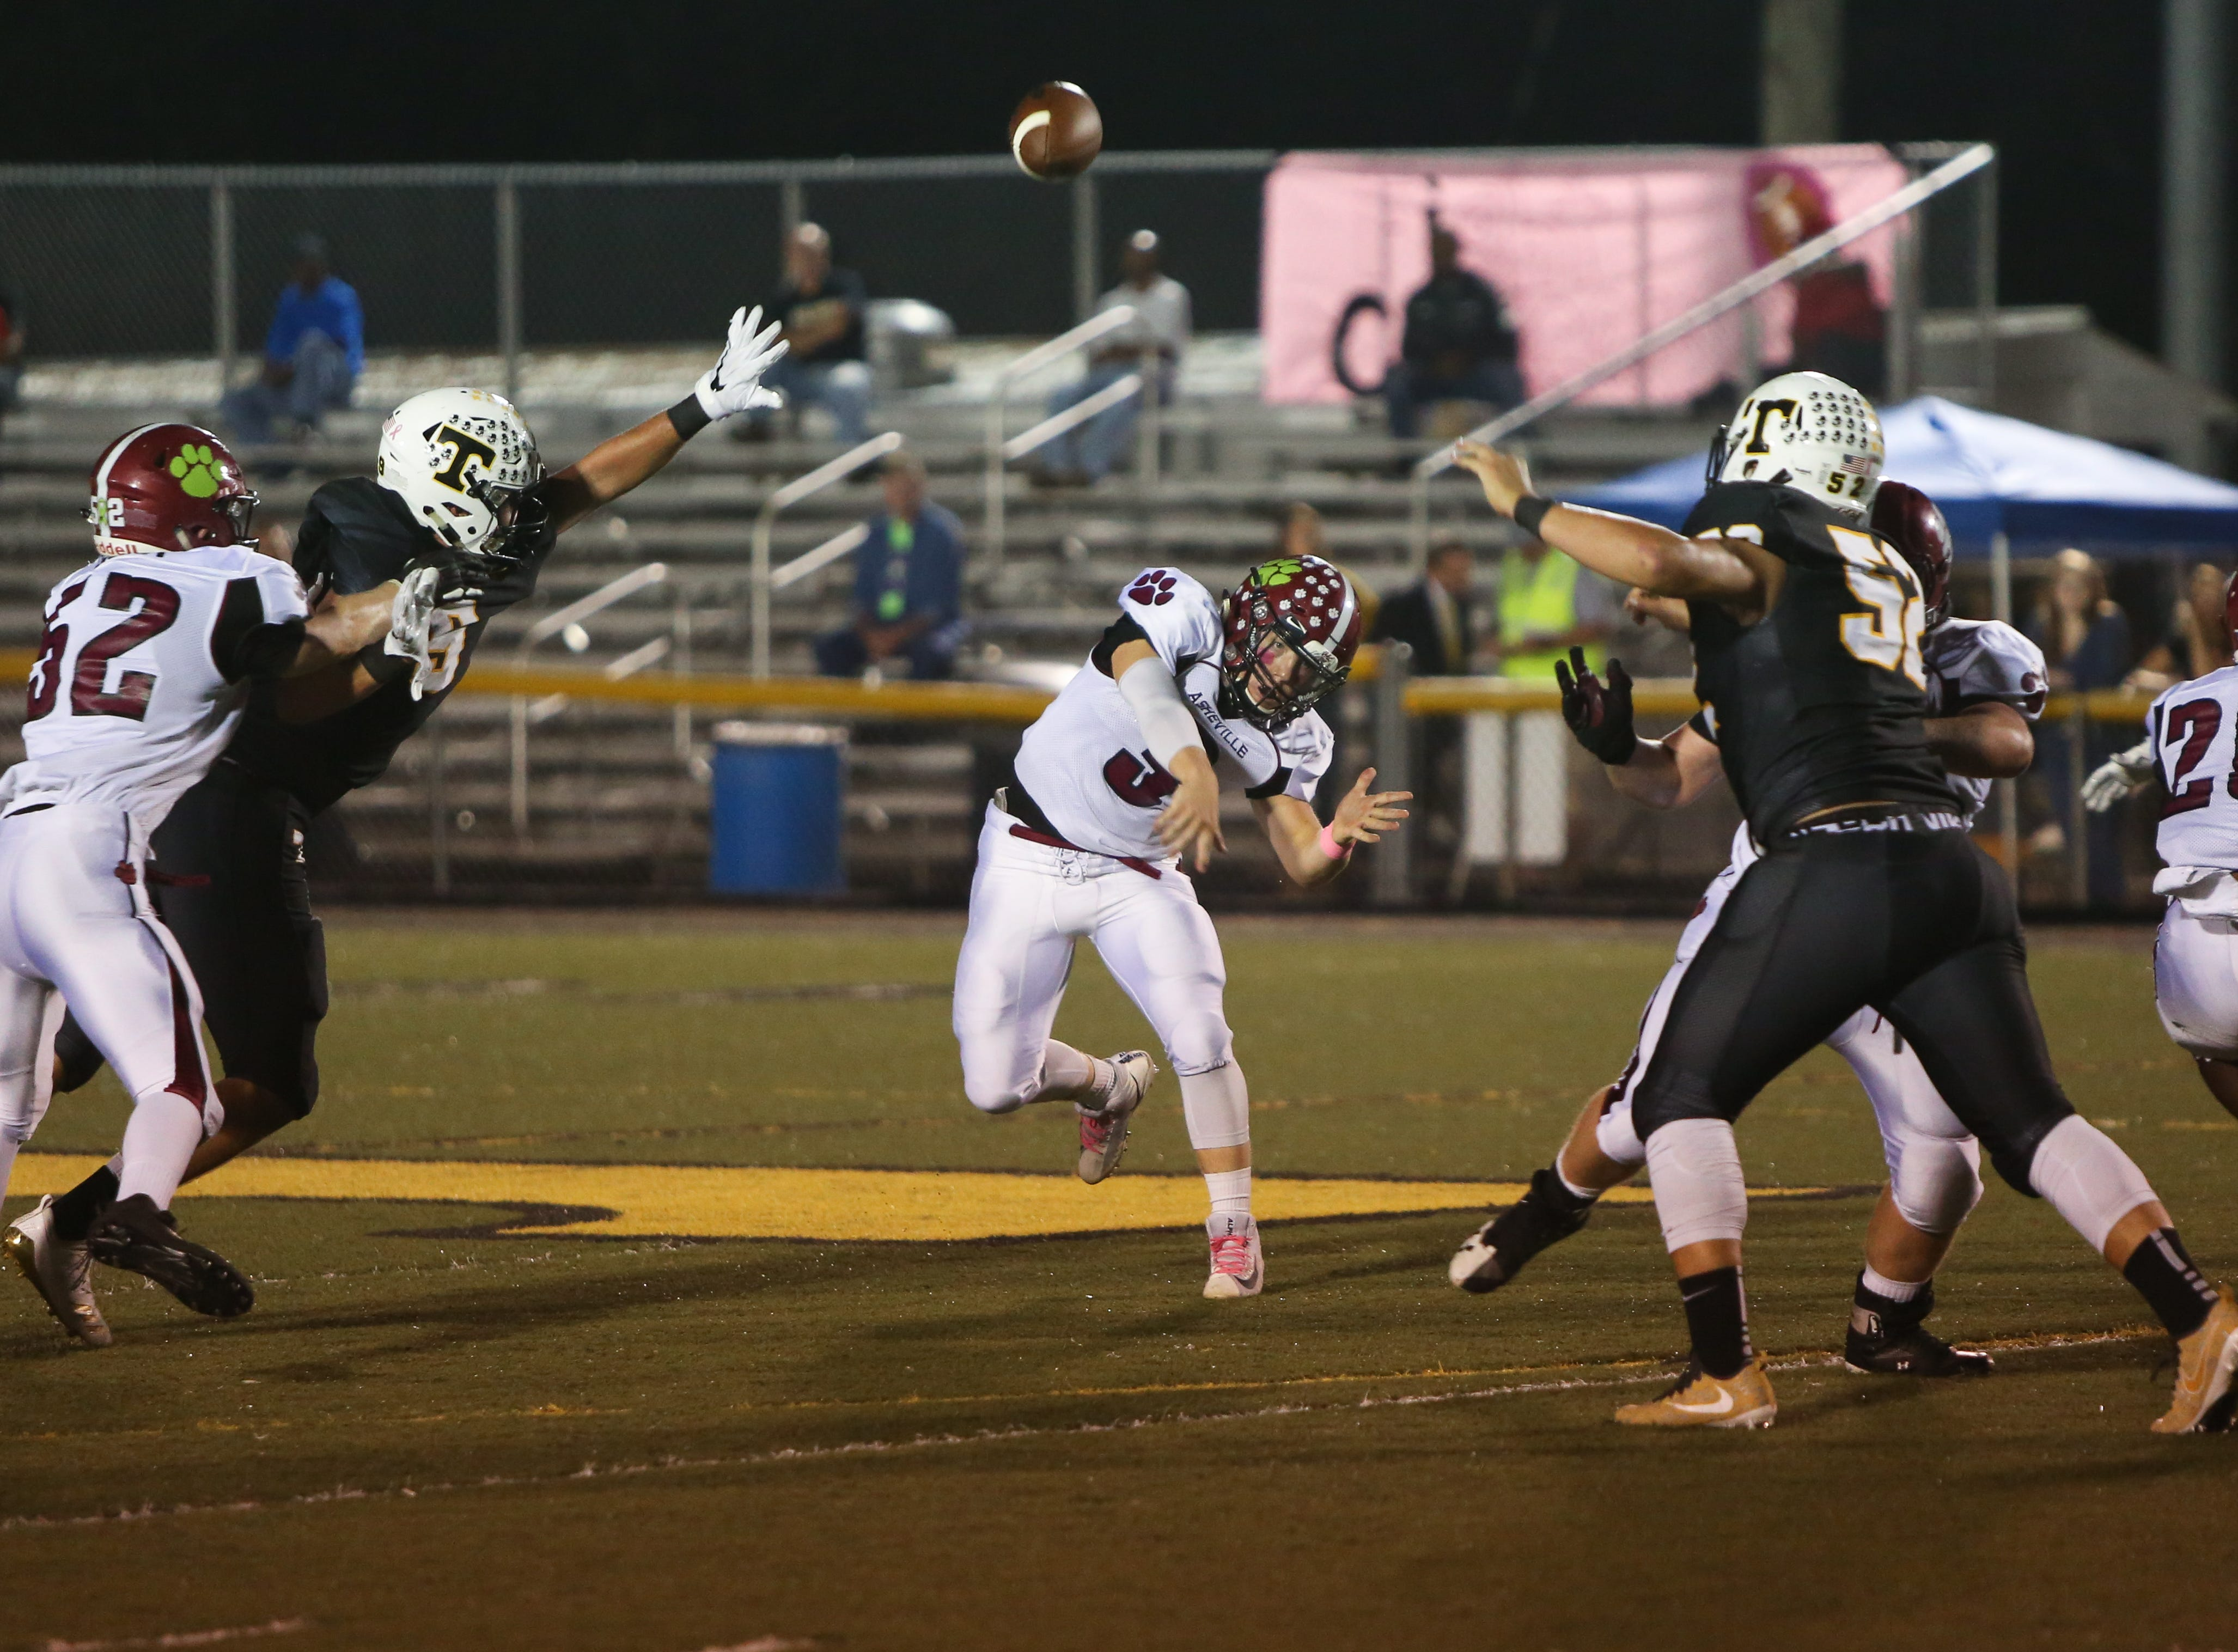 Asheville's Three Hillier throws the ball on Friday, October 5th, 2018 at Tuscola.  Asheville took the win over Tuscola with a final score of 37-6.